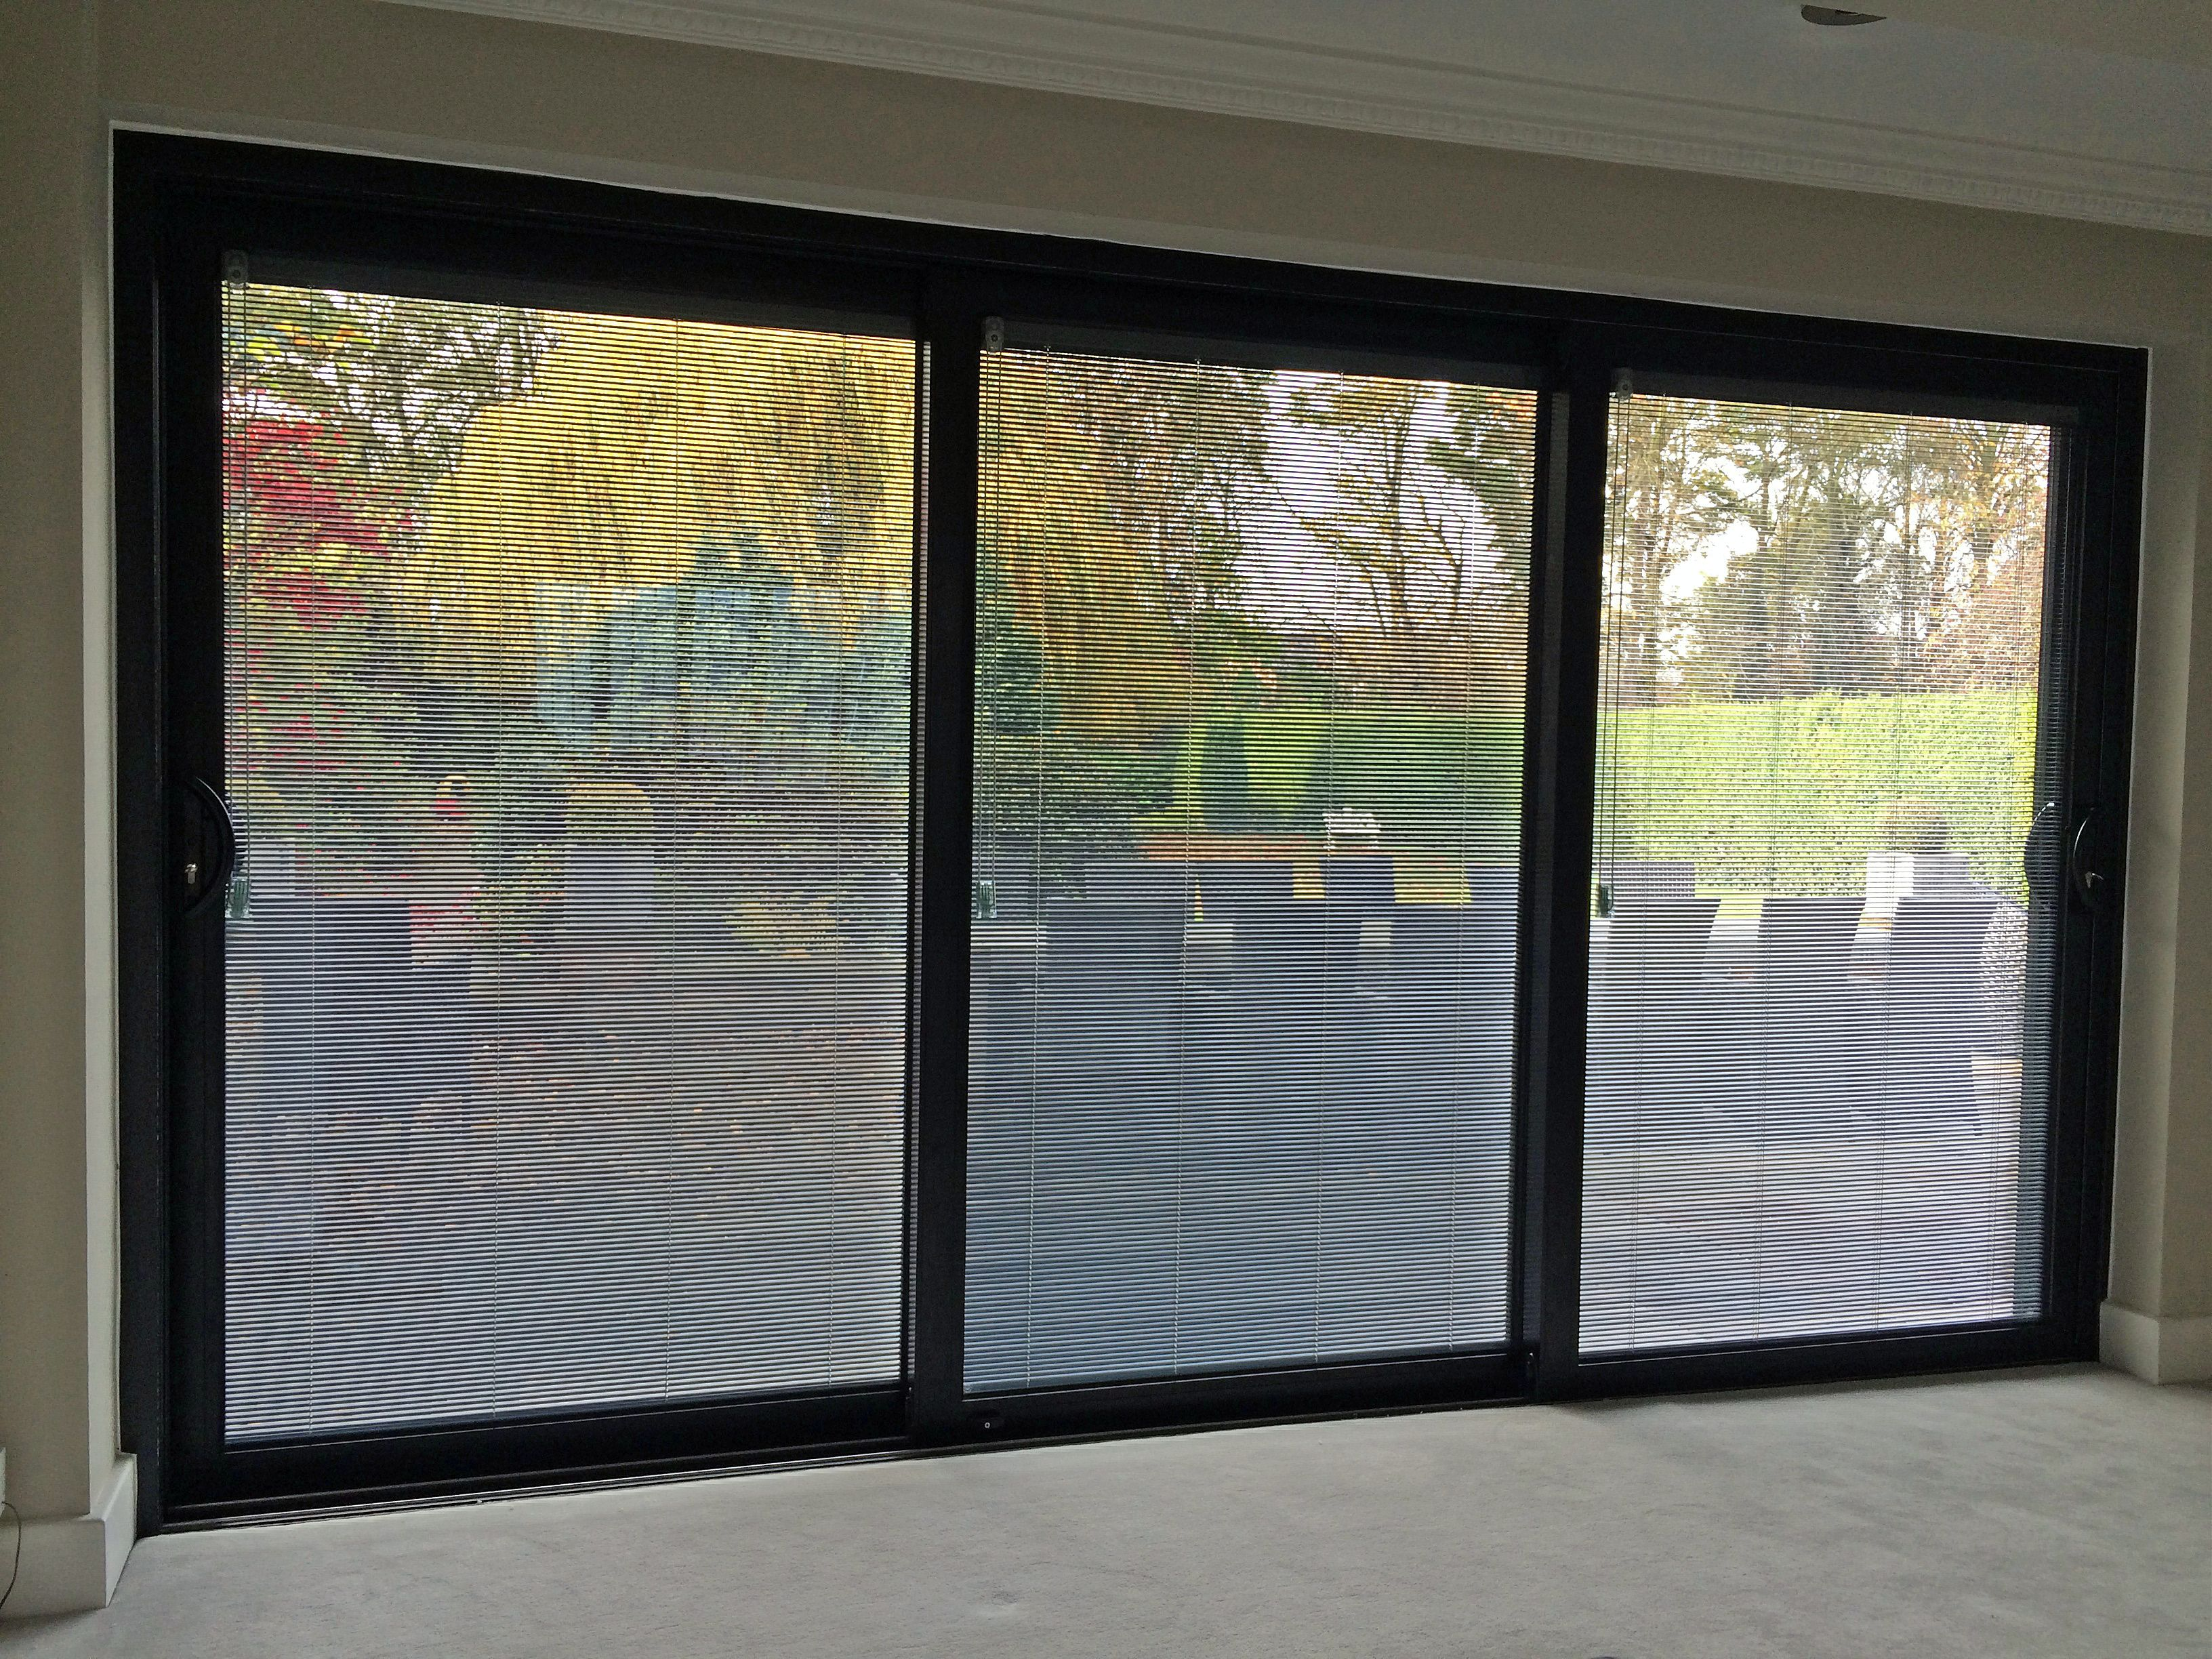 A Smart Visoglide Plus Triple Track Sliding Door Complete With